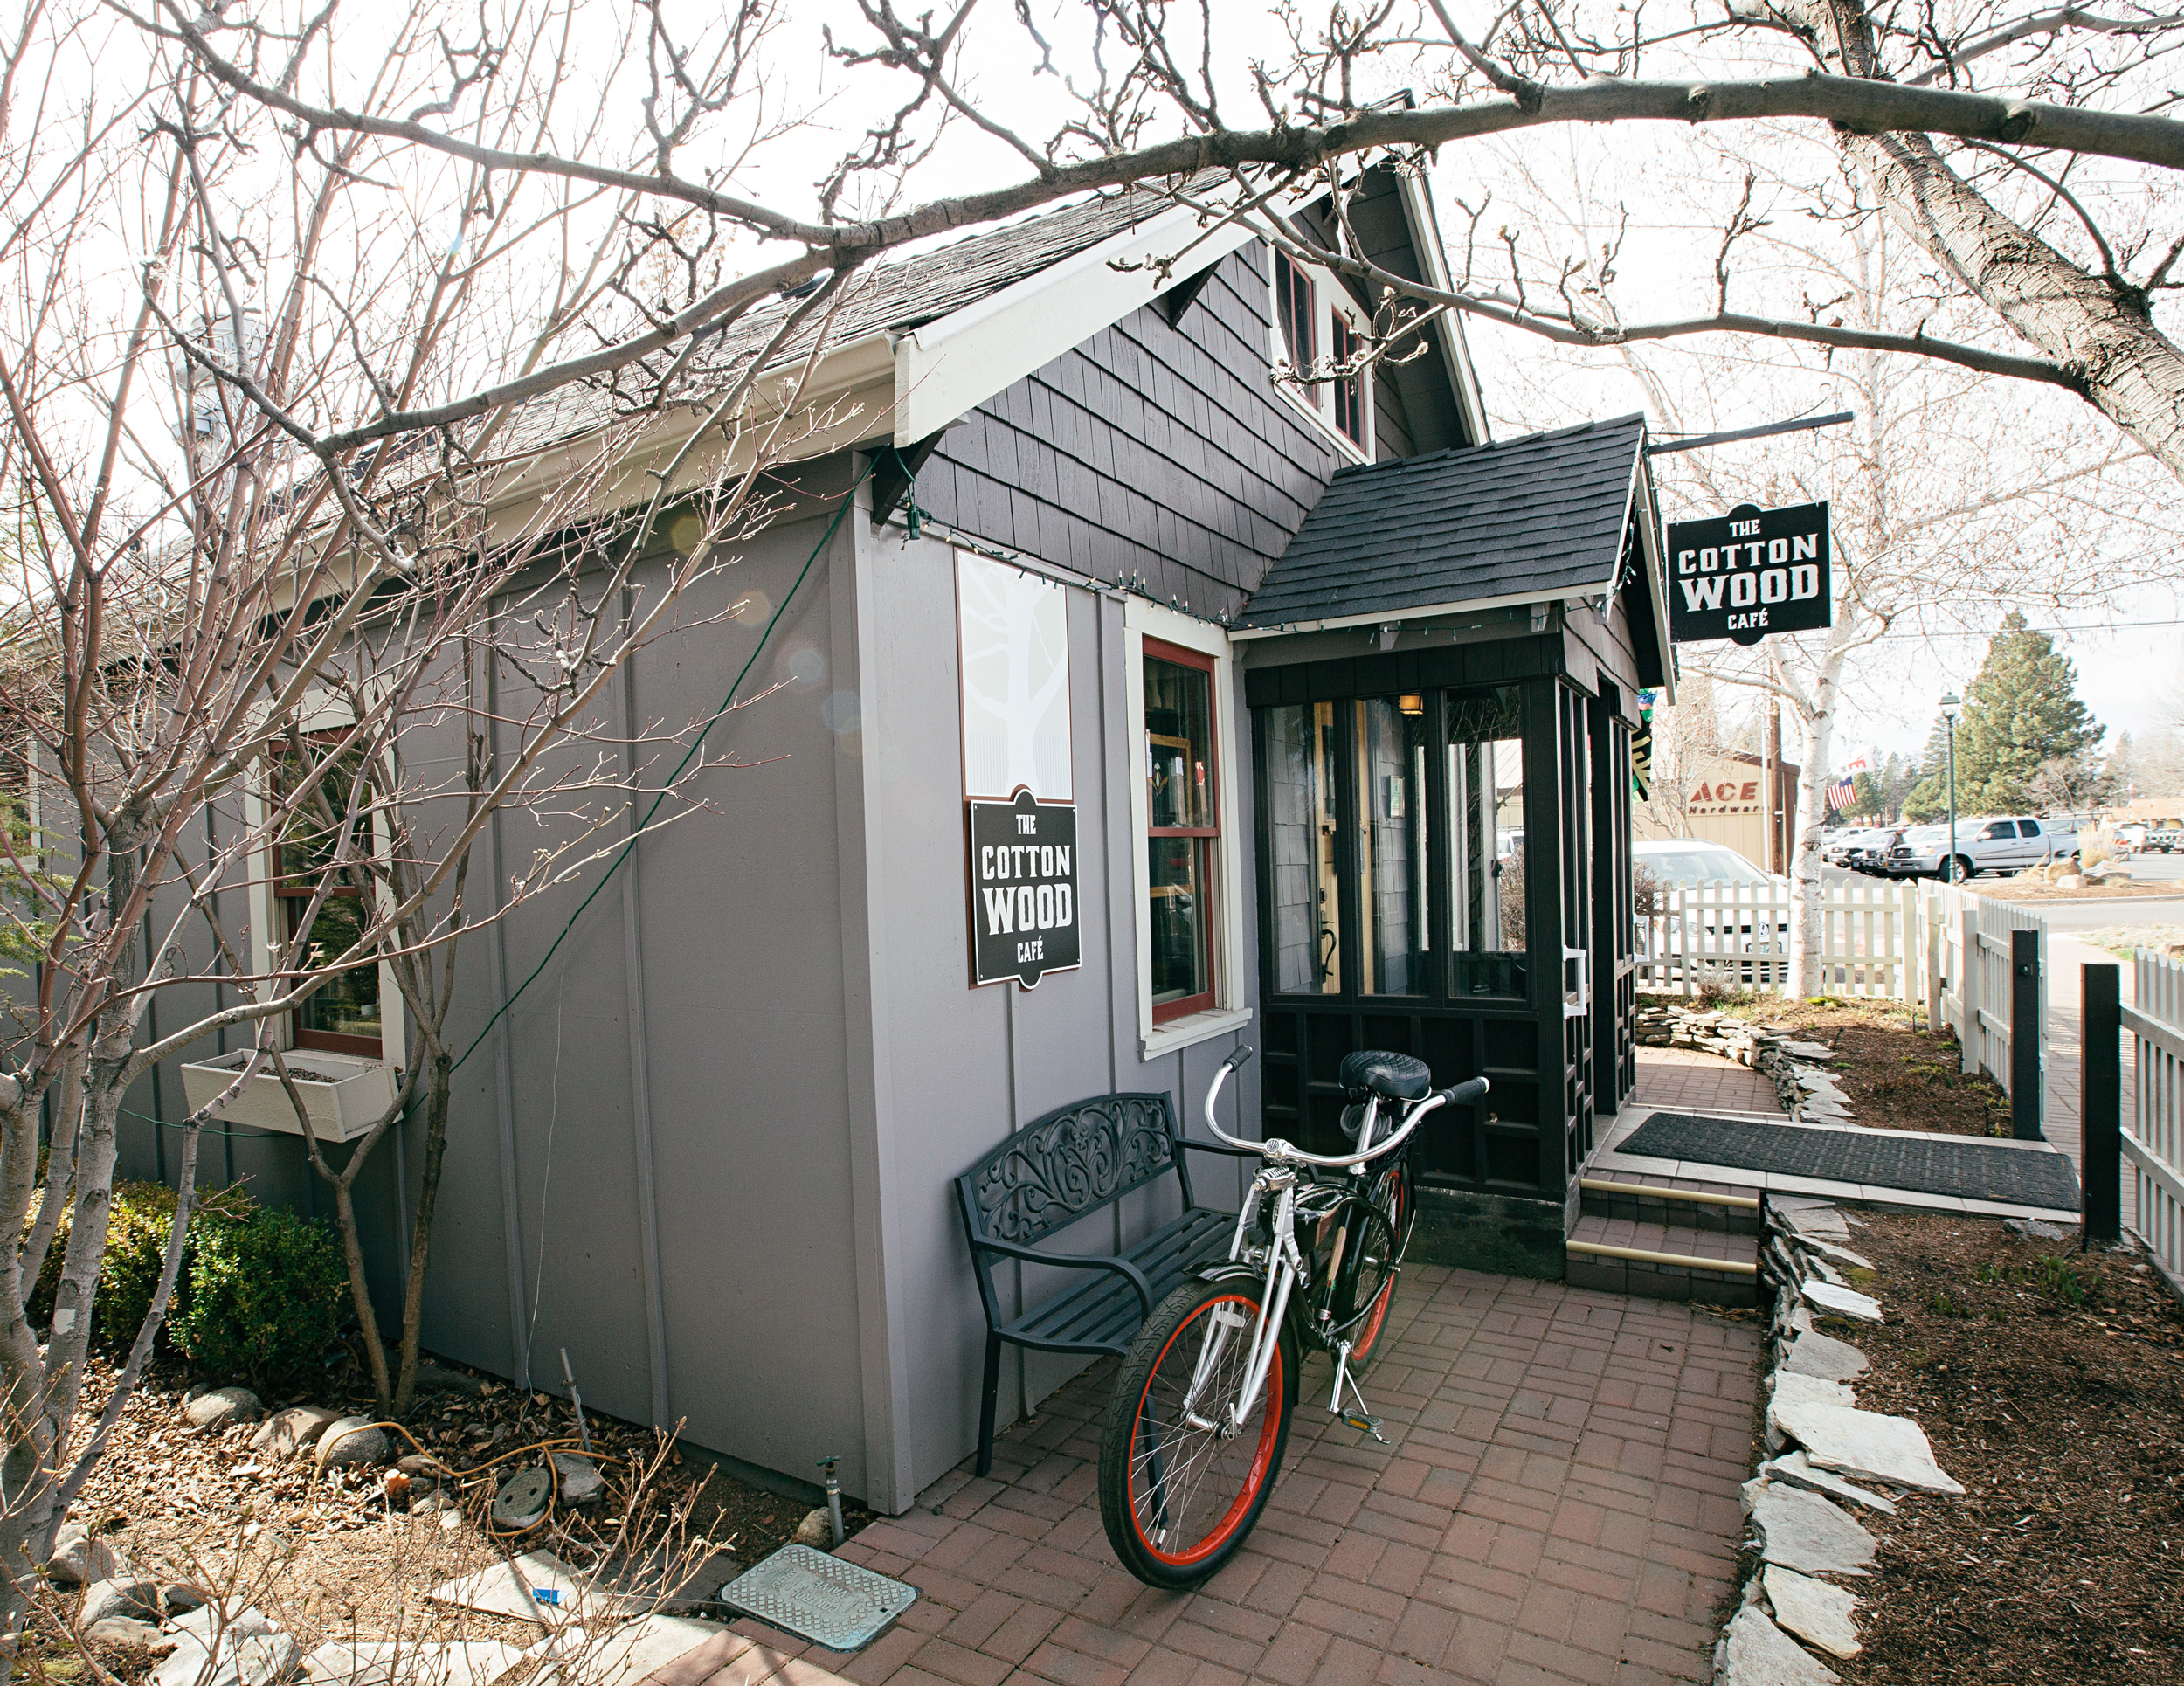 The-cottonwood-cafe-breakfast-all-day-lunch-restaurant-sisters-oregon.jpg